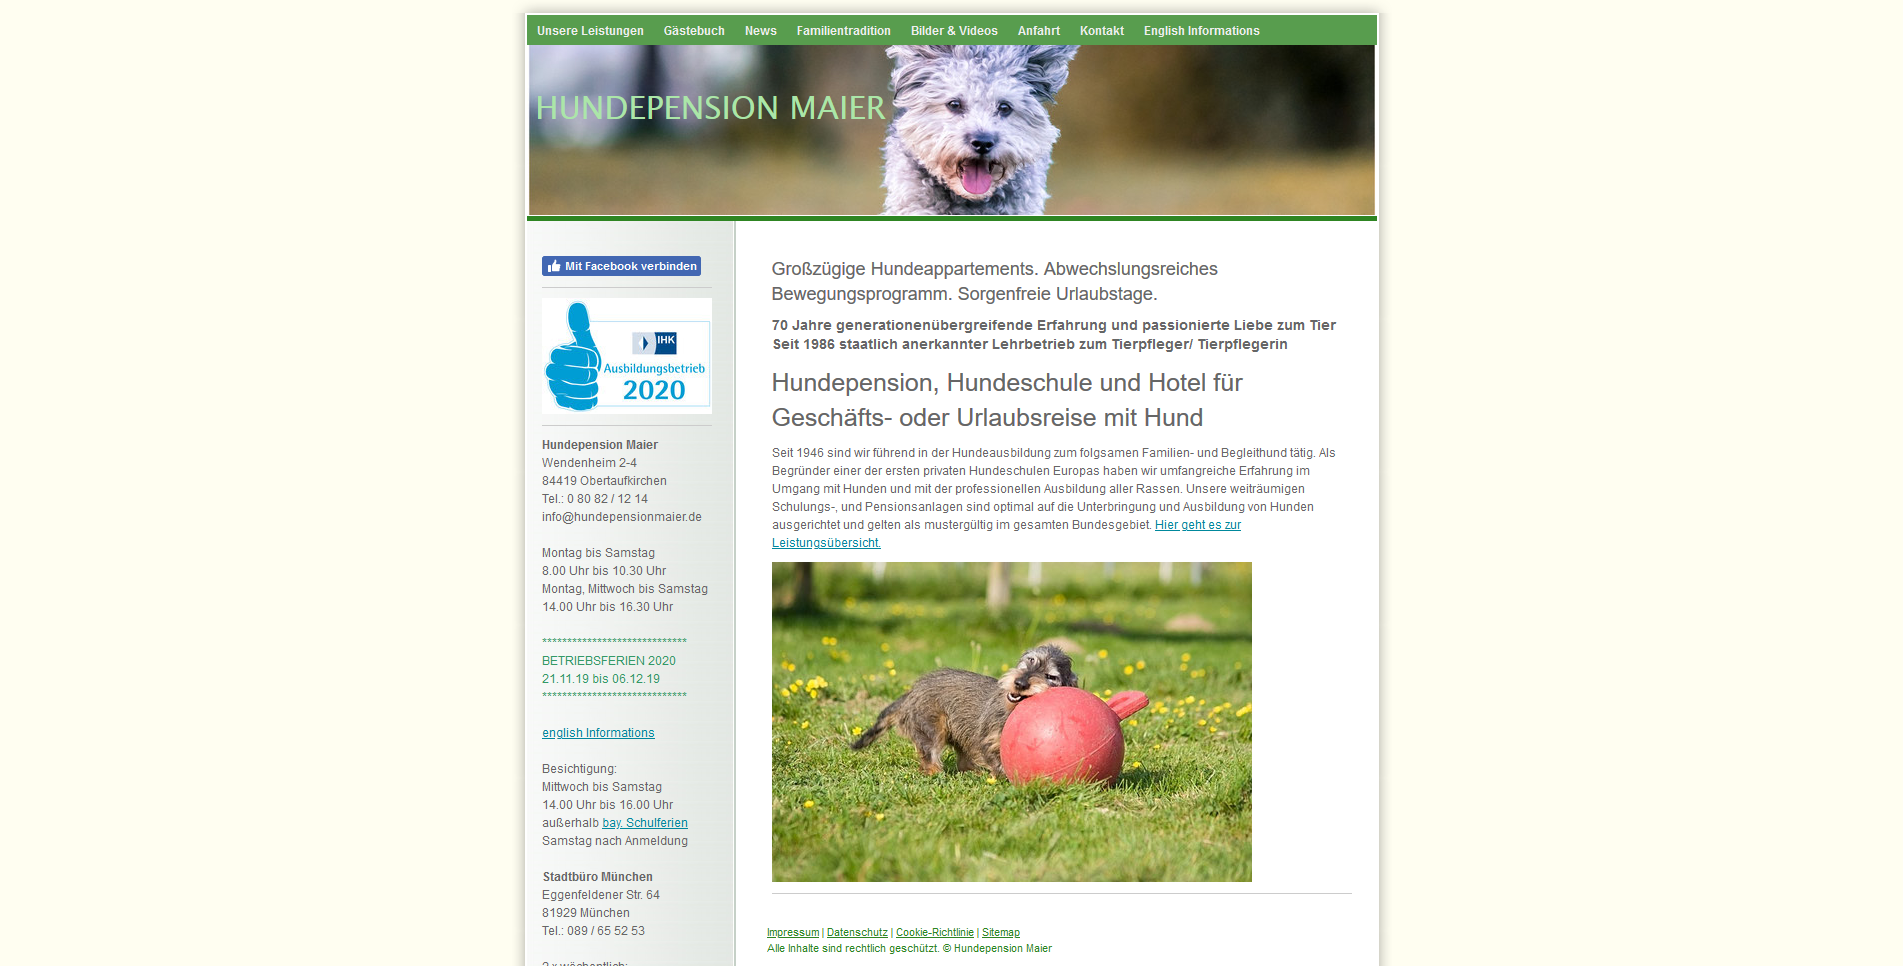 Hundepension Maier